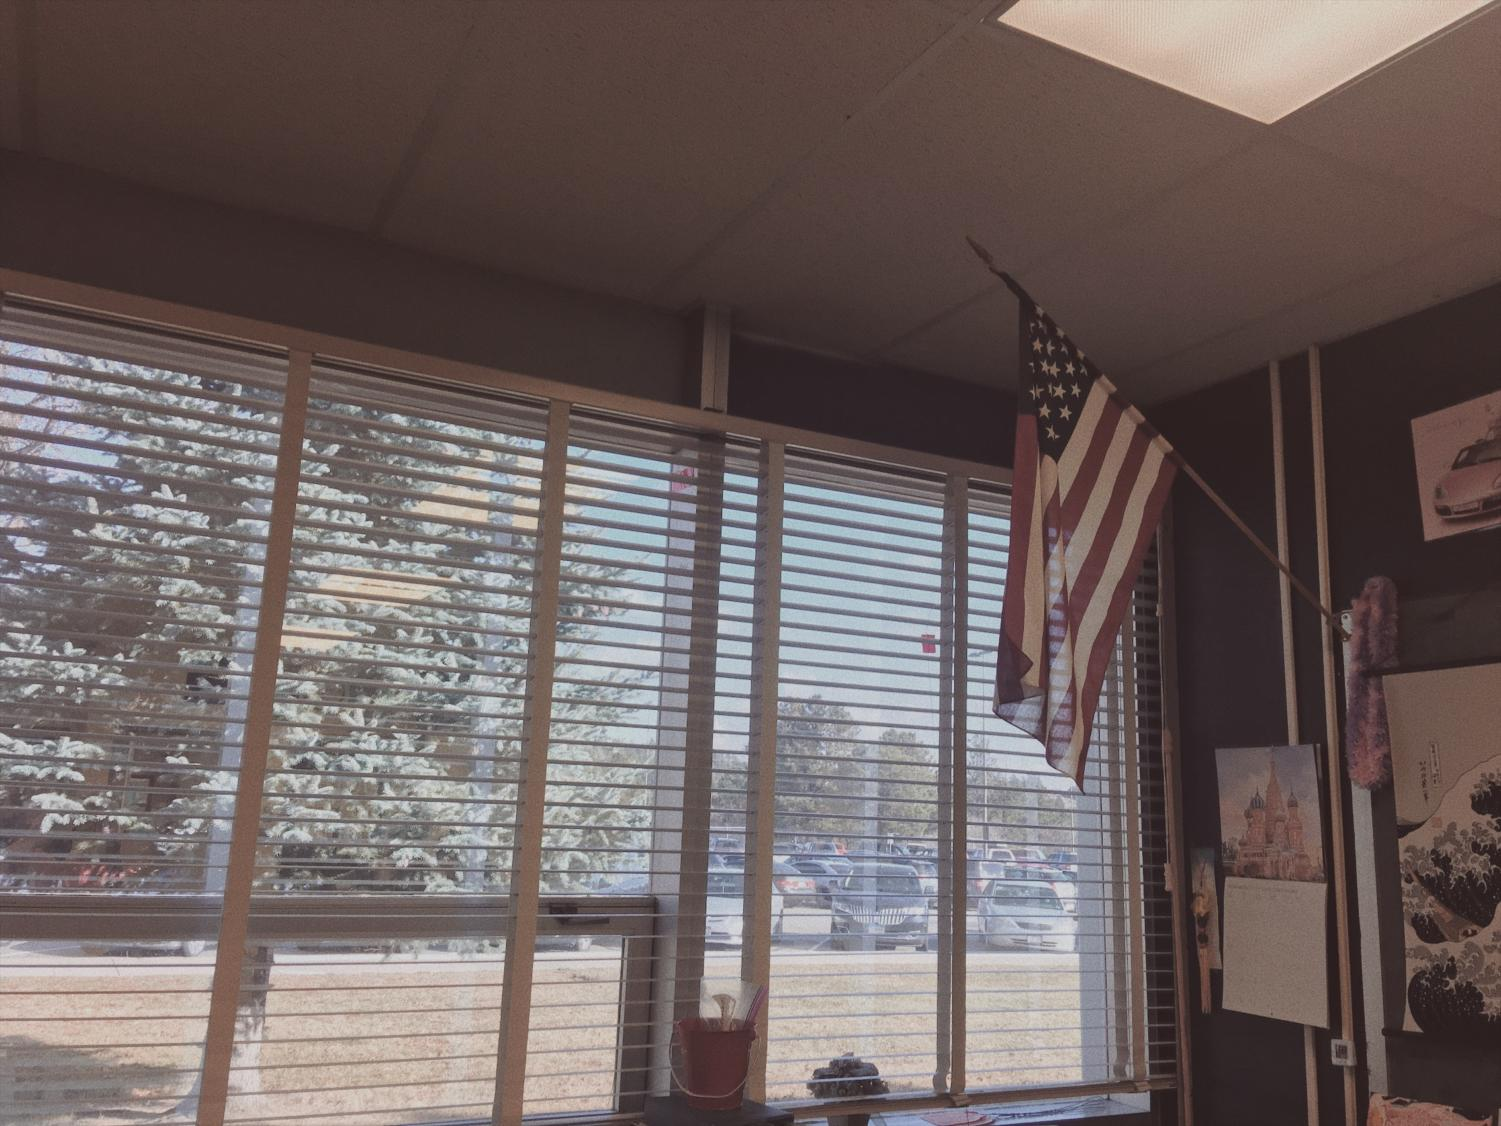 An American flag located in Mrs. Sorensen's room.